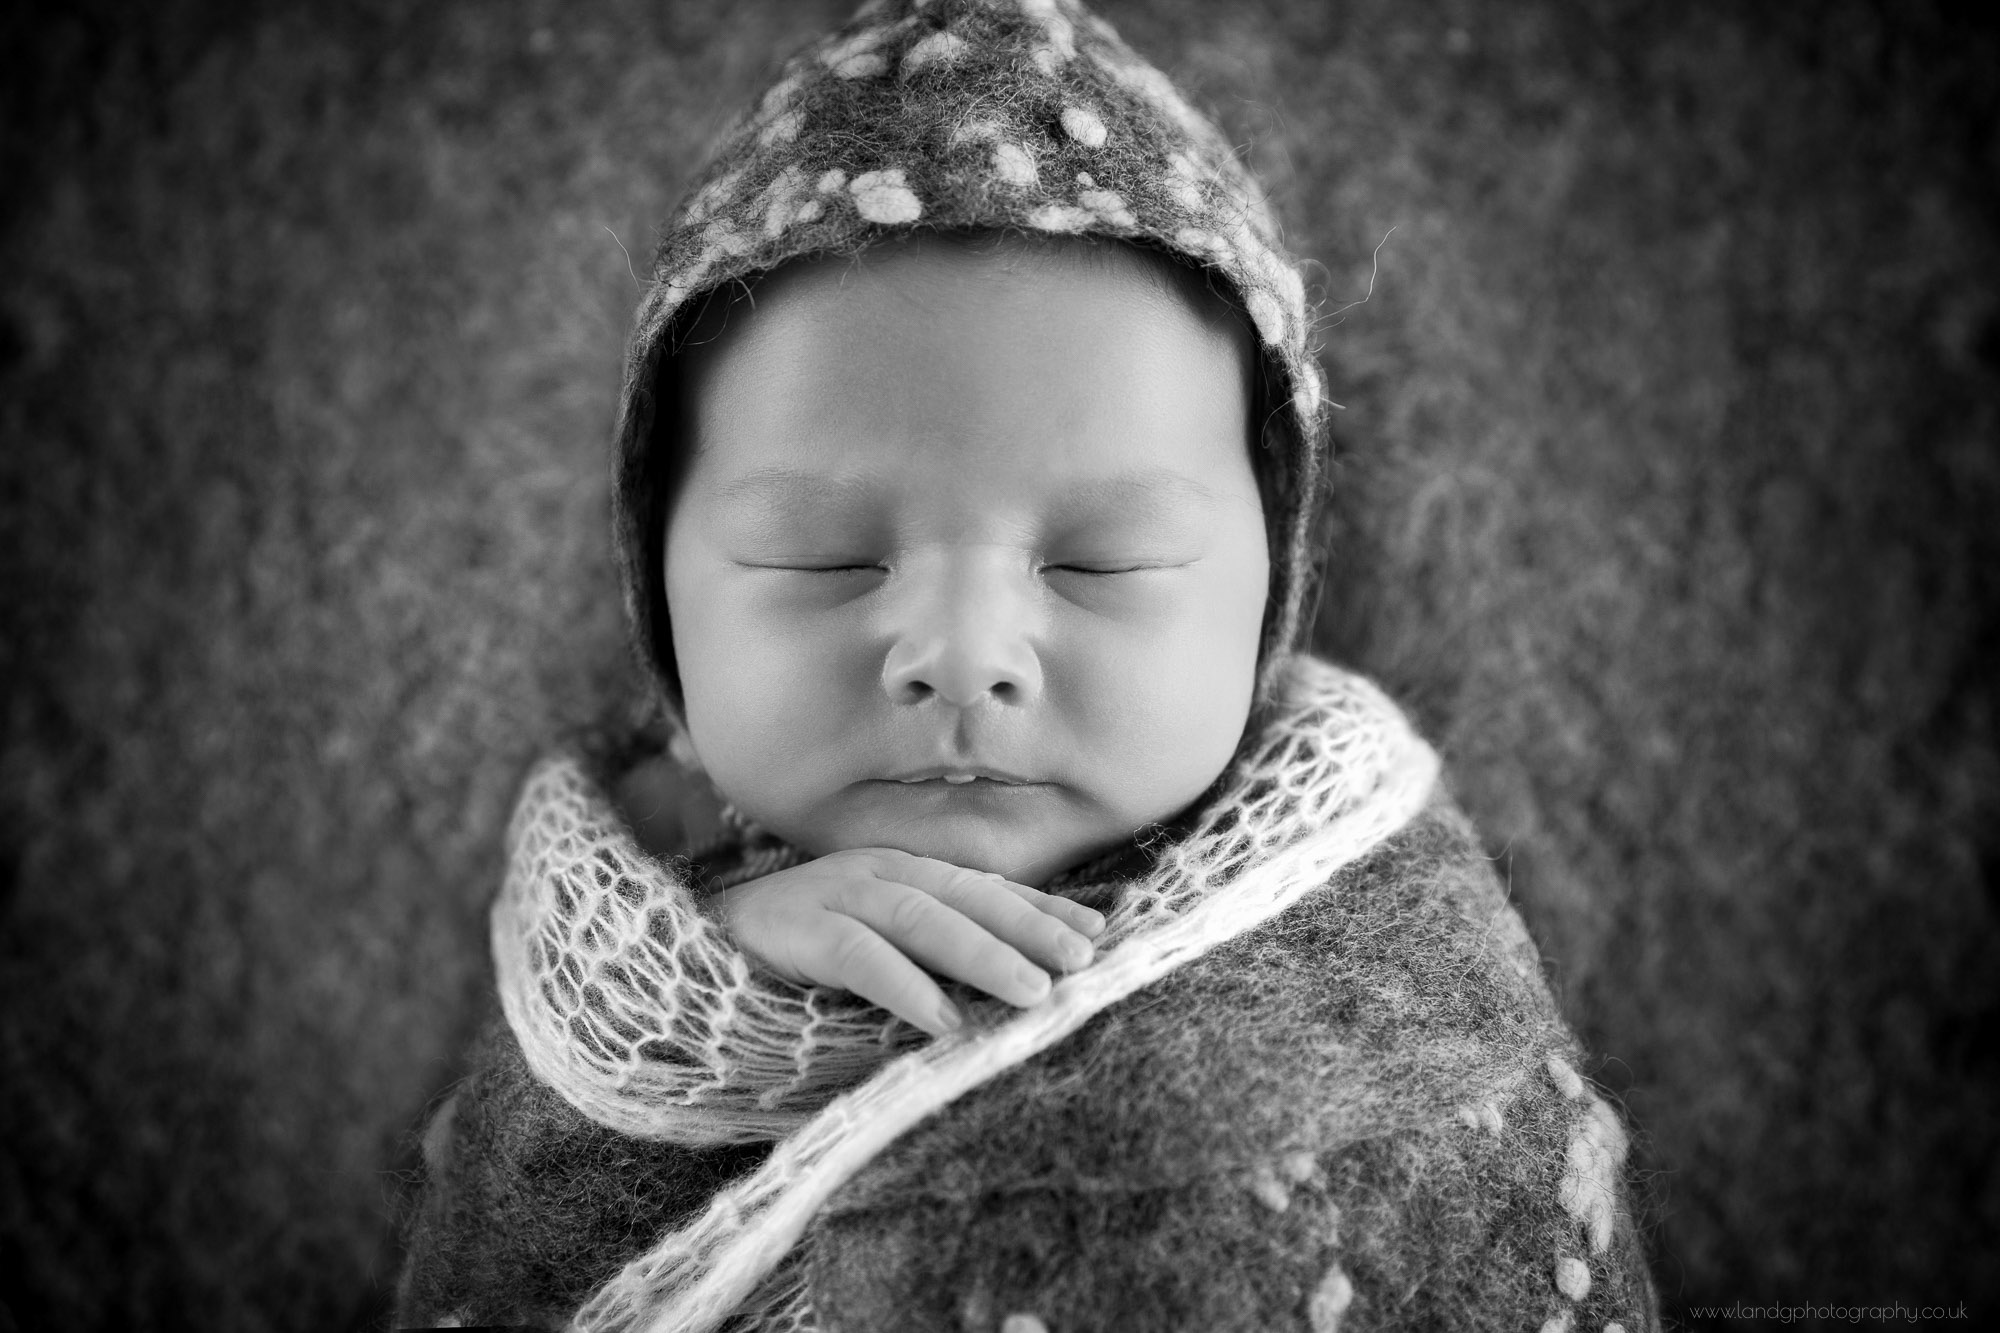 newborn-photography-greenwich-in-london-3.jpg